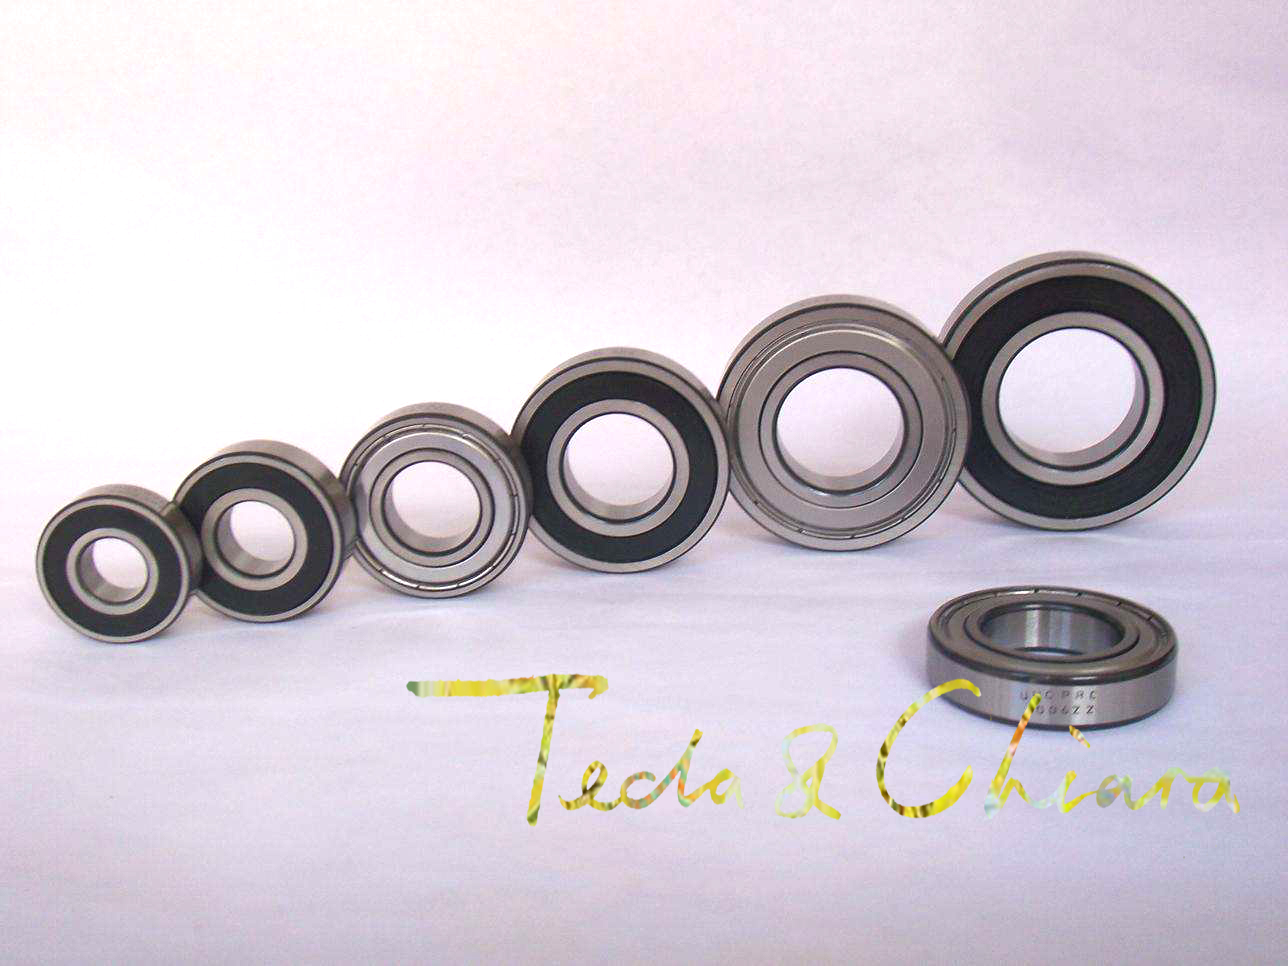 MR126 MR126ZZ MR126RS MR126-2Z MR126Z MR126-2RS ZZ RS RZ 2RZ Deep Groove Ball Bearings 6 x 12 x 4mm High Quality free shipping 25x47x12mm deep groove ball bearings 6005 zz 2z 6005zz bearing 6005zz 6005 2rs